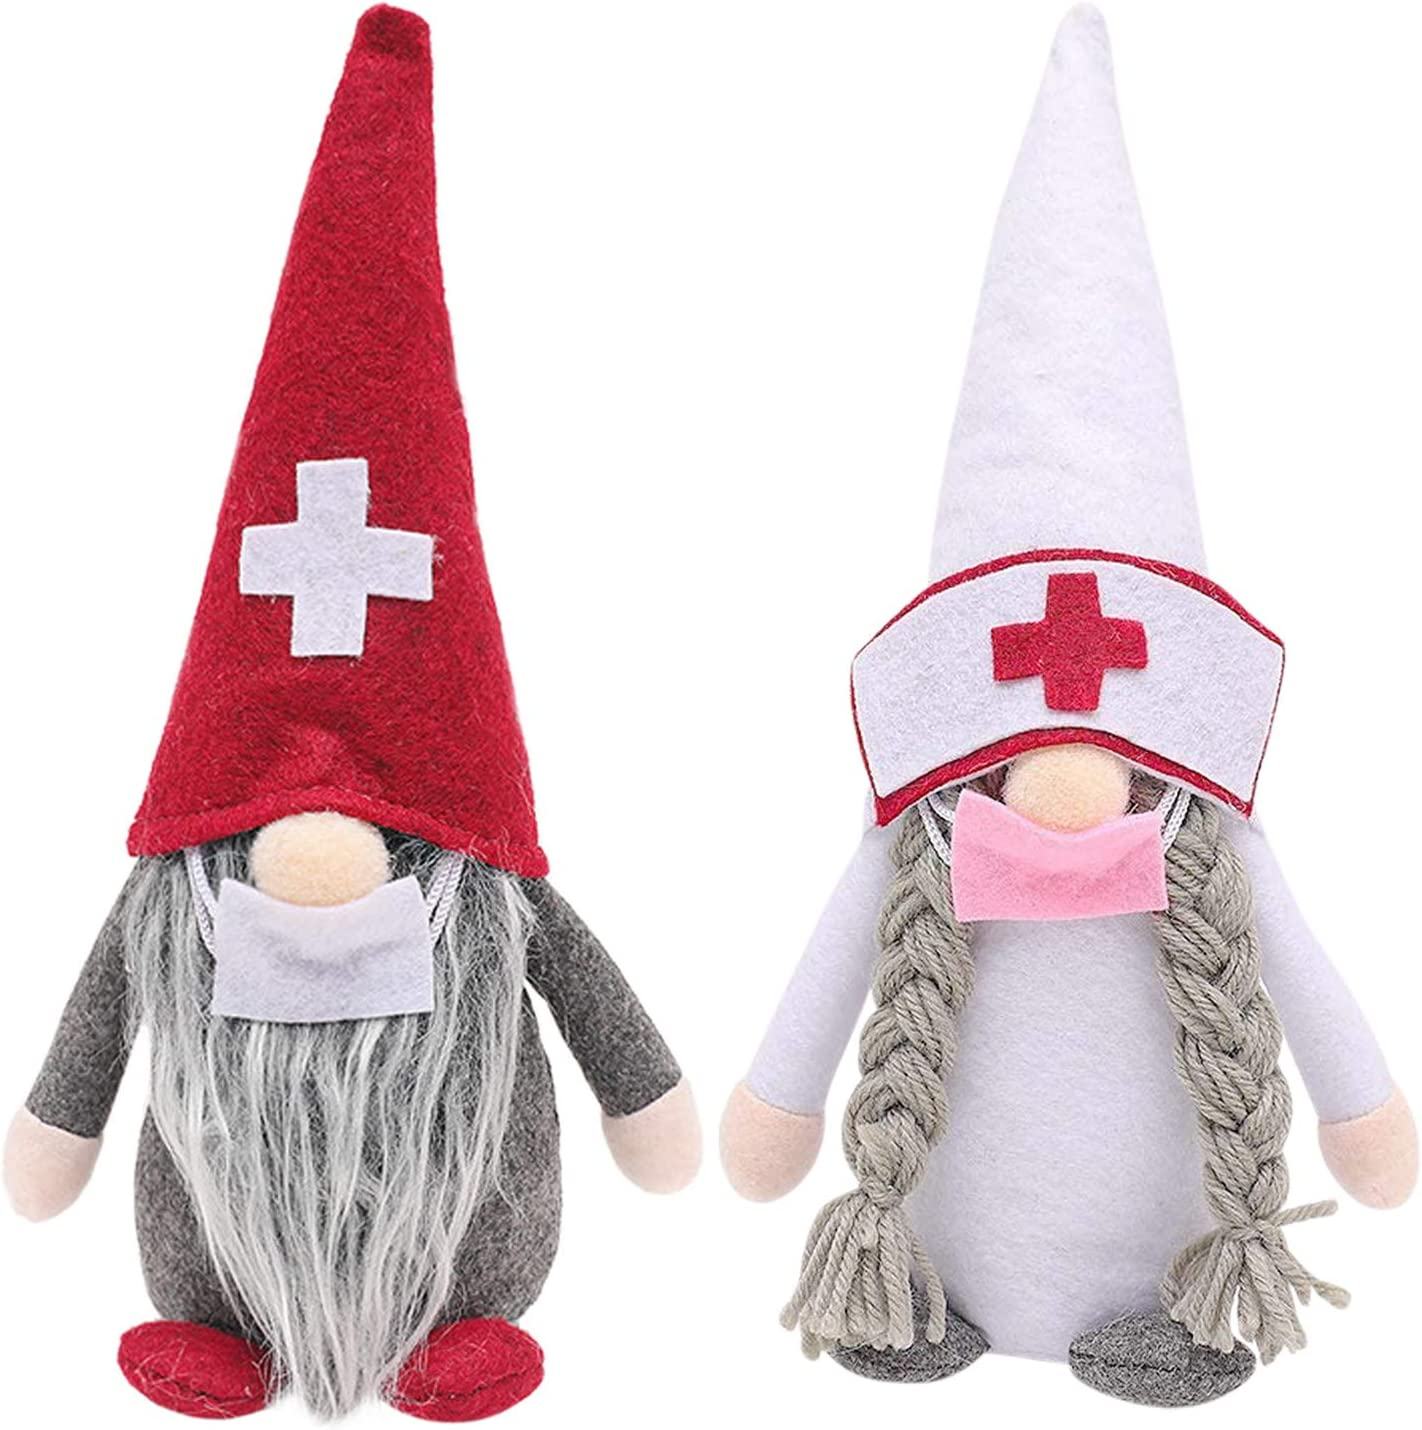 Colorful gourd Christmas Gnome Doll Long hat Doctor Nurse Faceless Christmas Elf Handmade Scandinavian tomte Home Holiday Decorations Party Gifts (A)